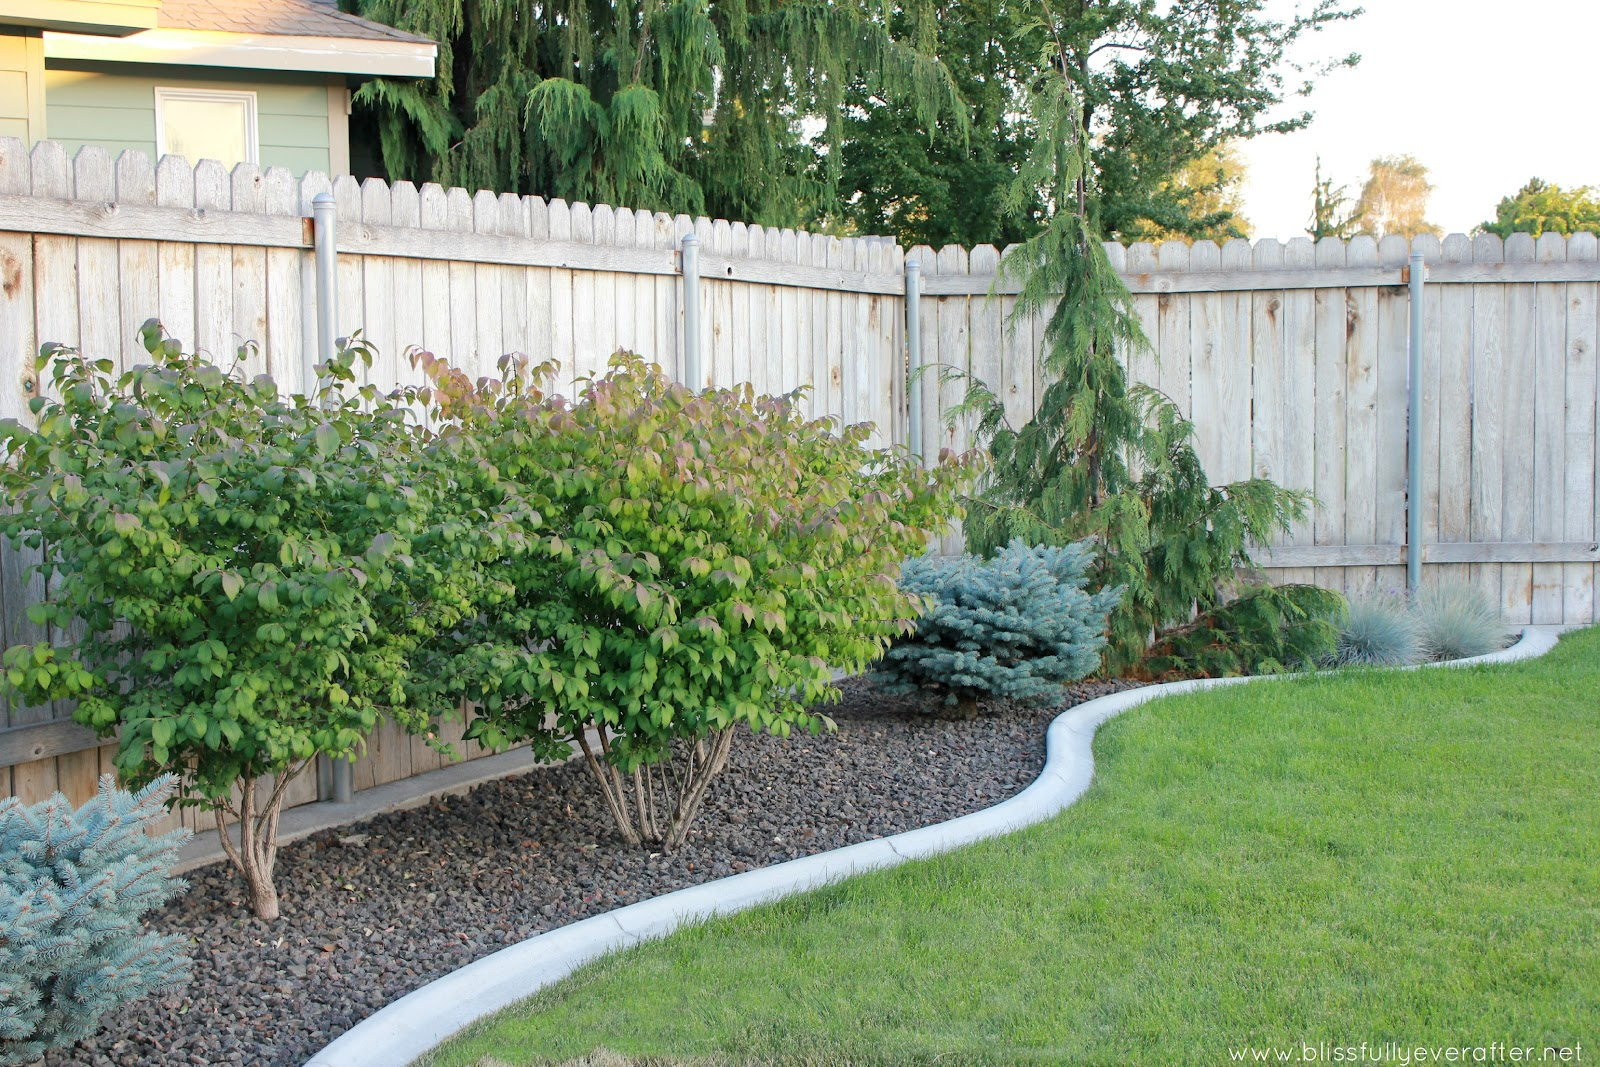 Yes landscaping Custom: Front yard landscaping ideas for